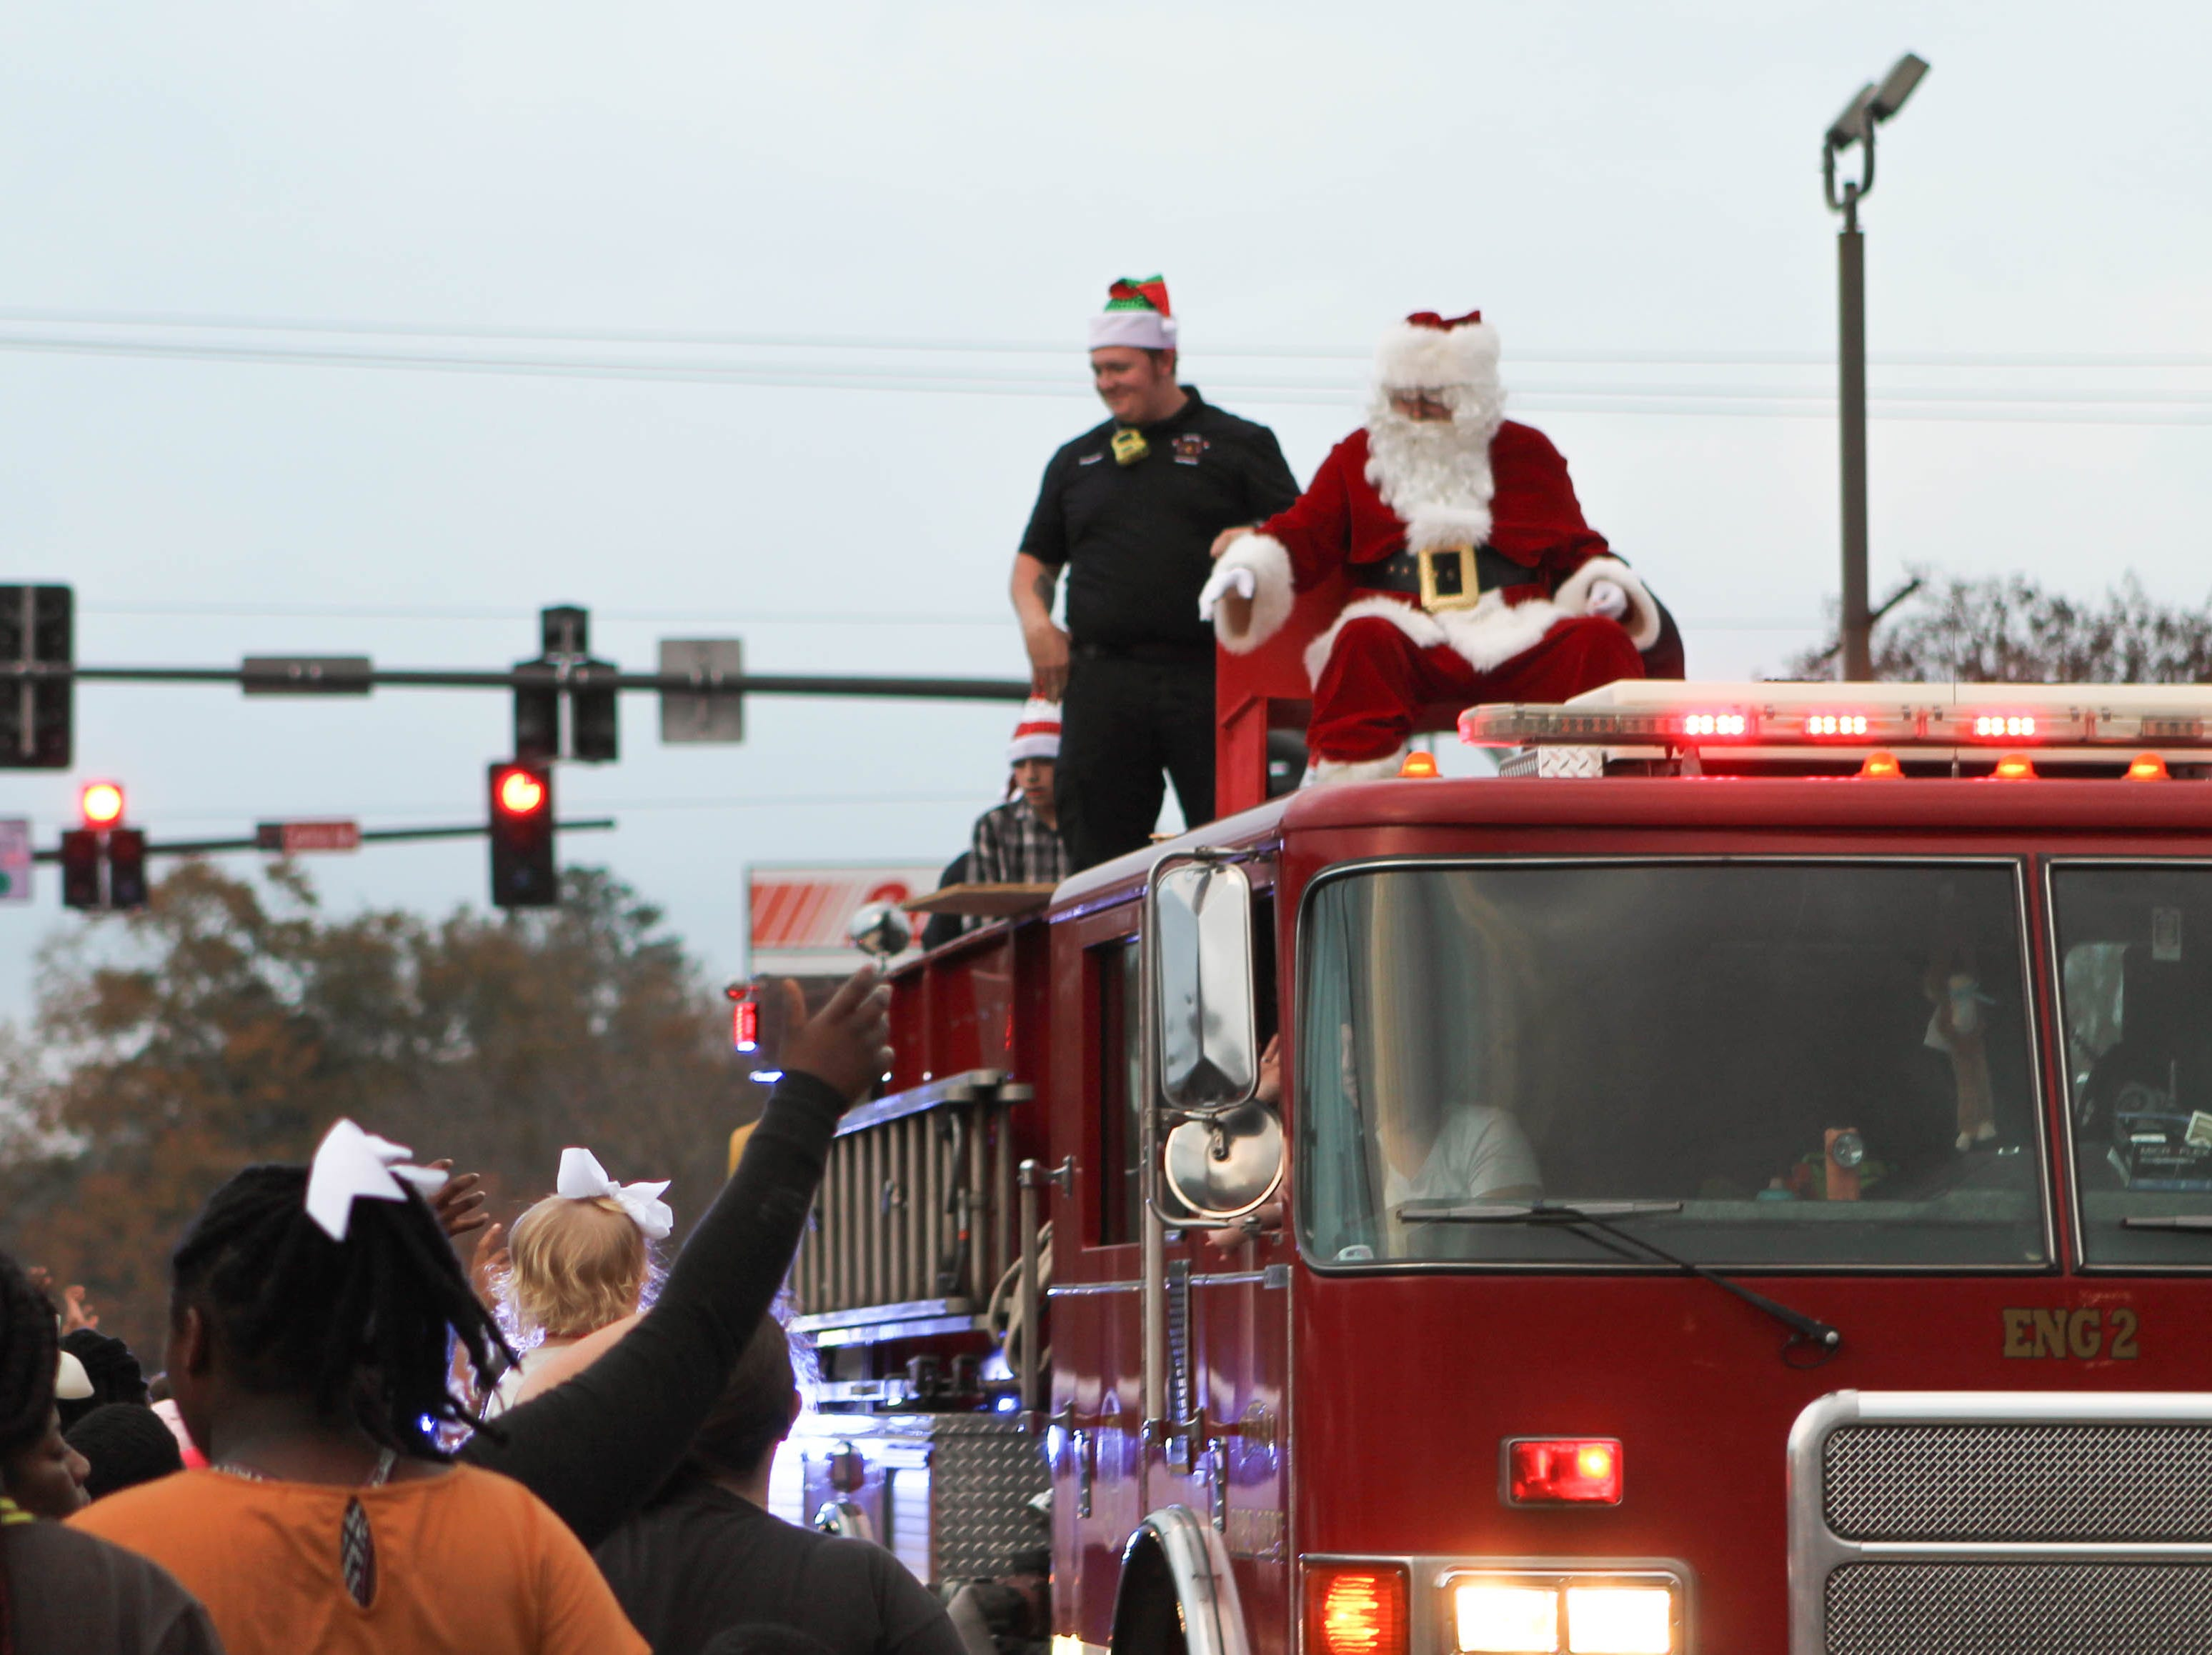 Sitting on top of a fire truck, Santa Claus waves to parade spectators, indicating the end of the Petal Christmas Parade on Saturday, December 1, 2018.